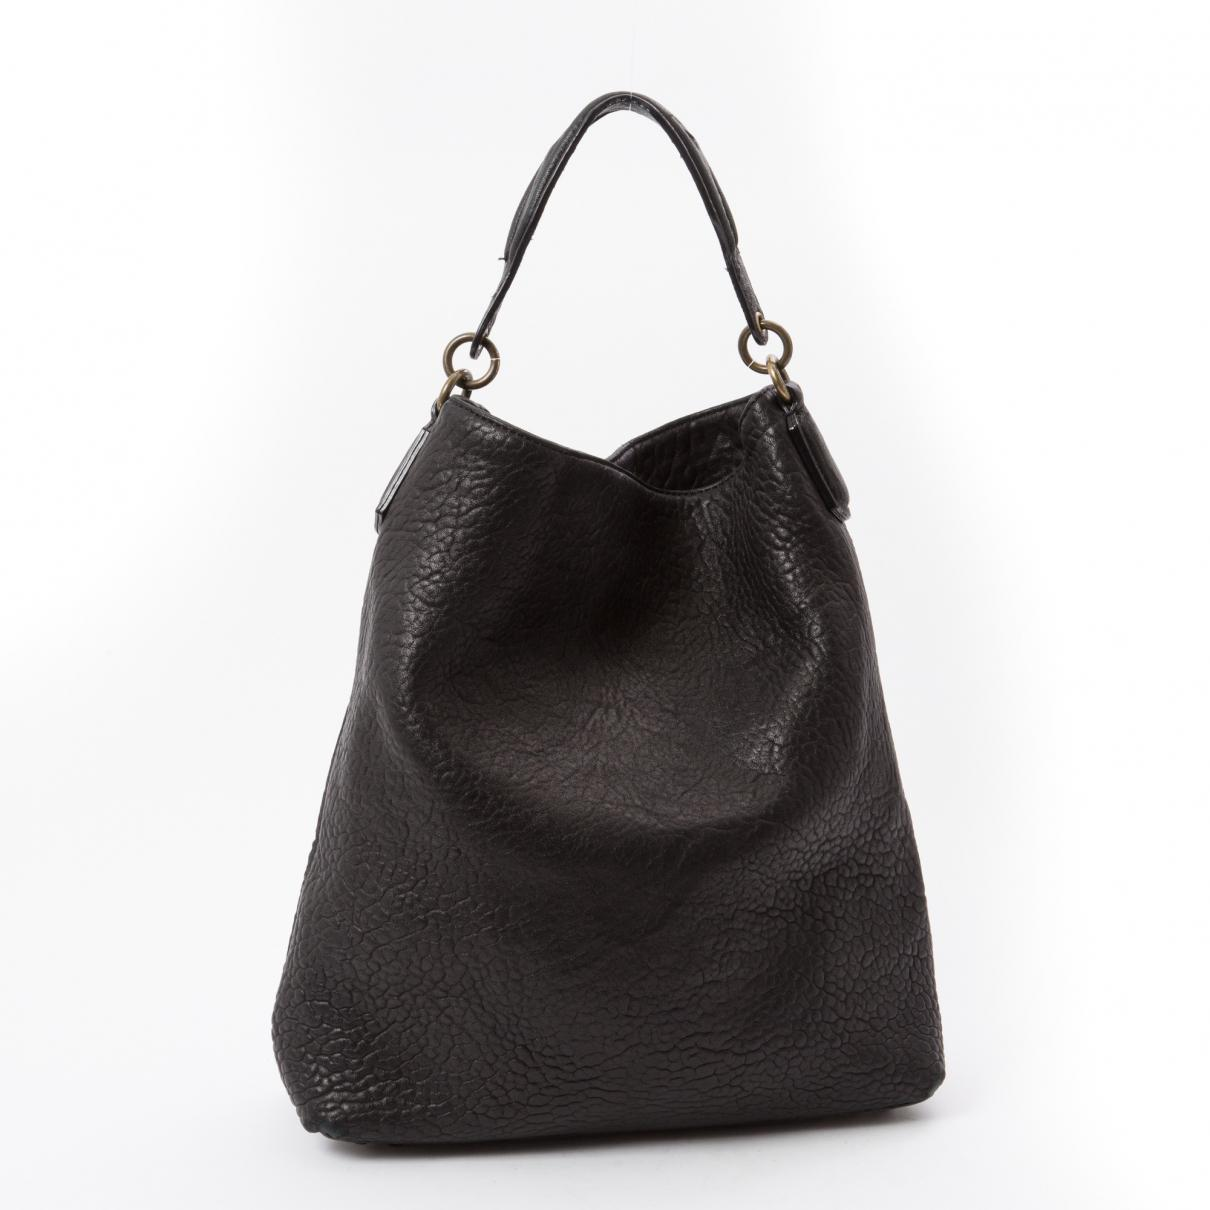 Pre-owned - Darcy leather bag Alexander Wang 9sYIQz